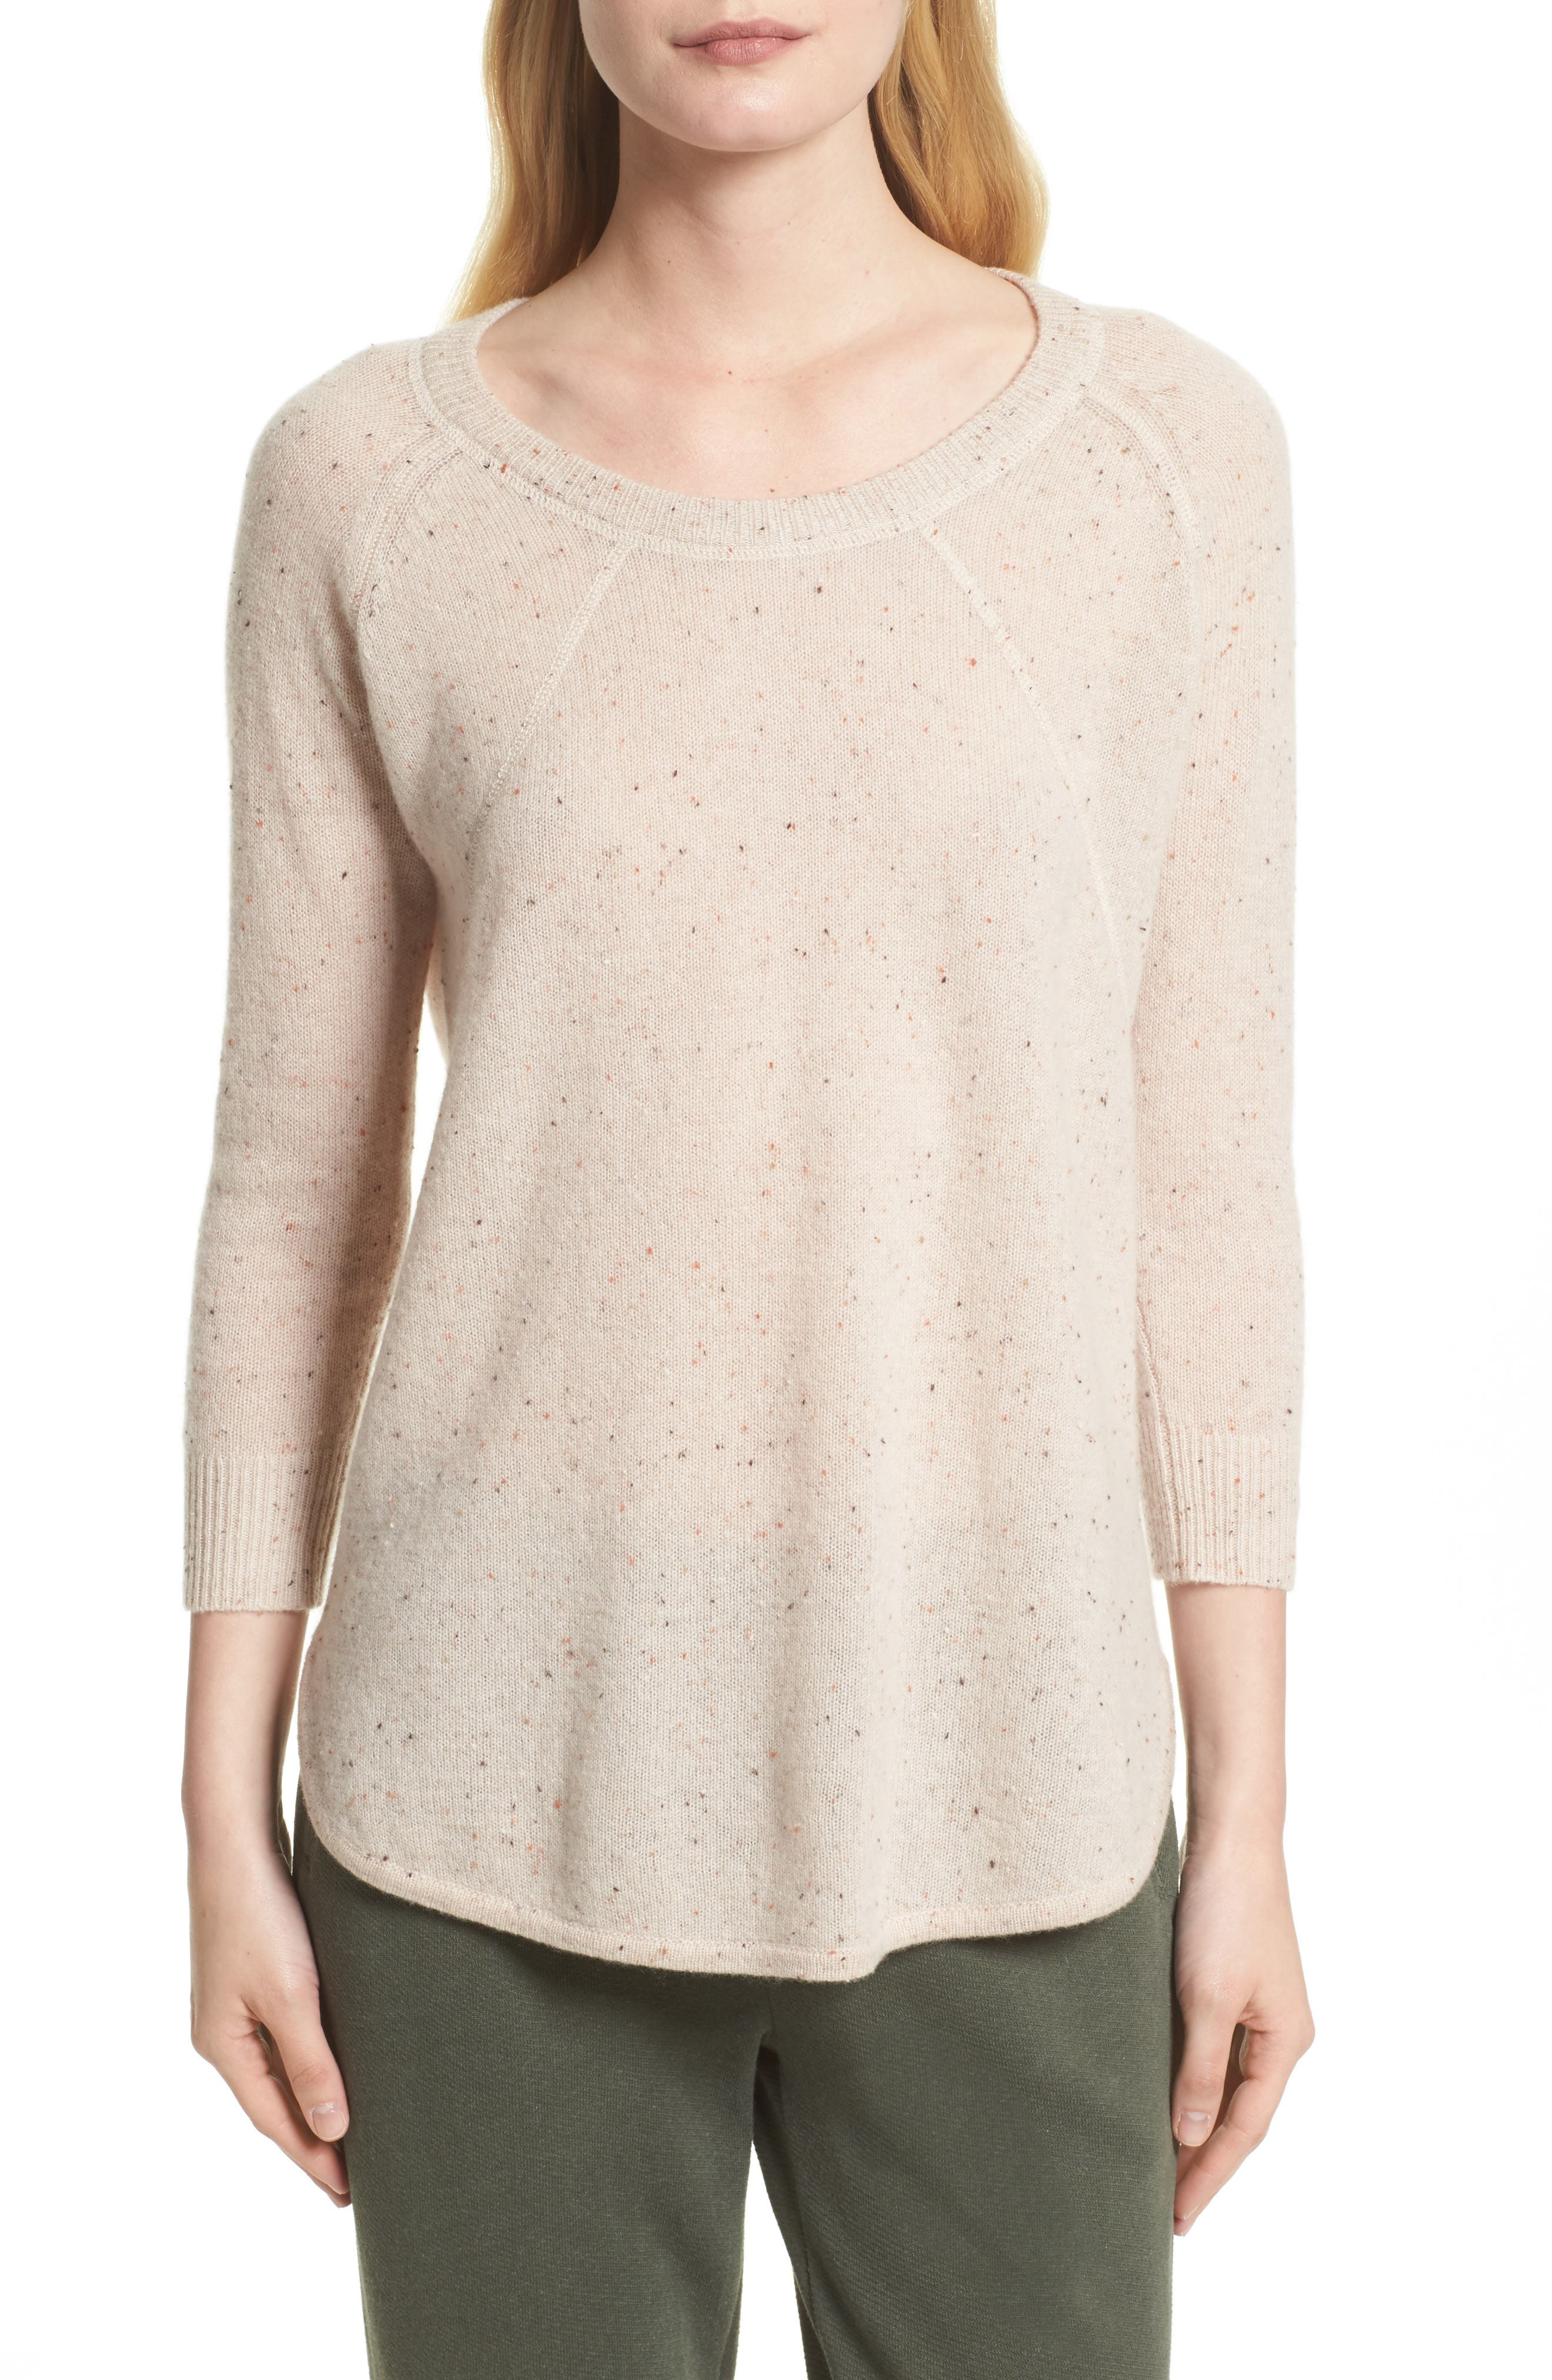 Main Image - ATM Anthony Thomas Melillo Cashmere Sweater (Nordstrom Exclusive)